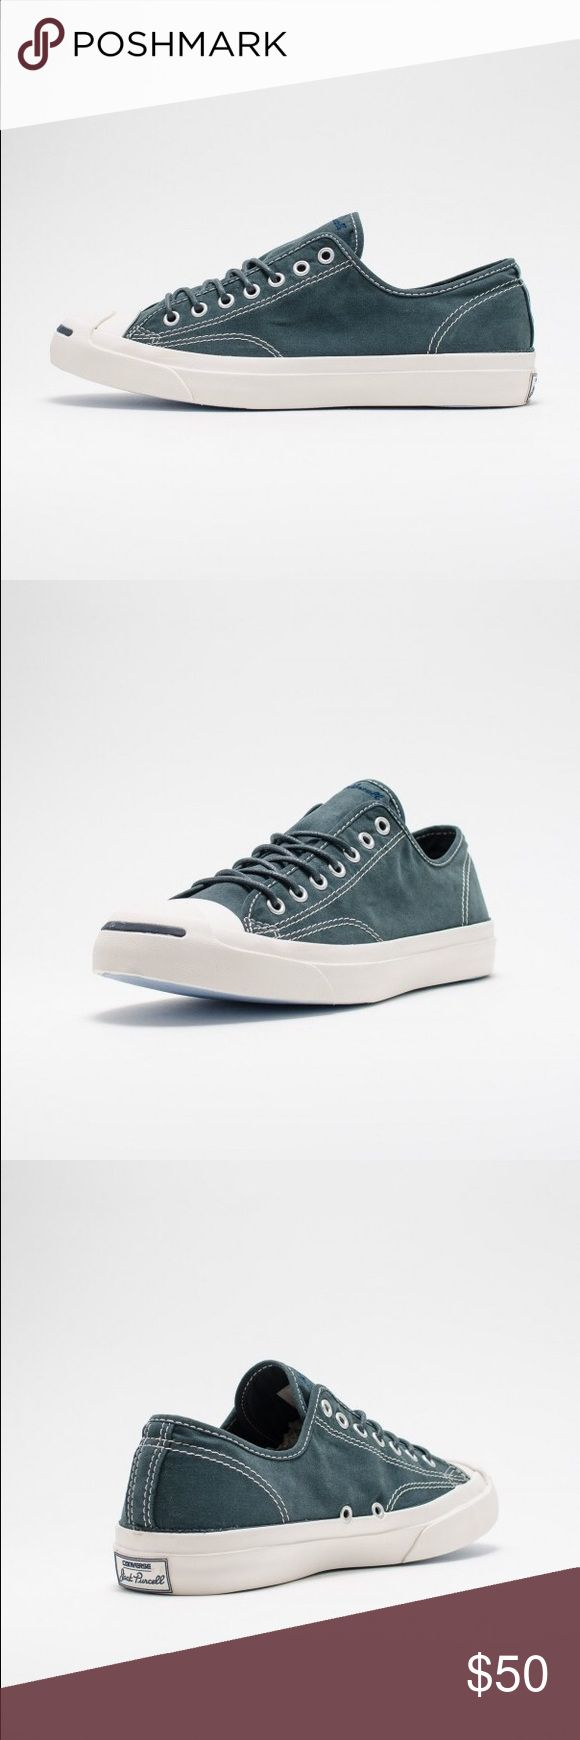 ❗️1 HOUR SALE Converse Mens Jack Purcell shoes Brand new without box Converse Shoes Sneakers